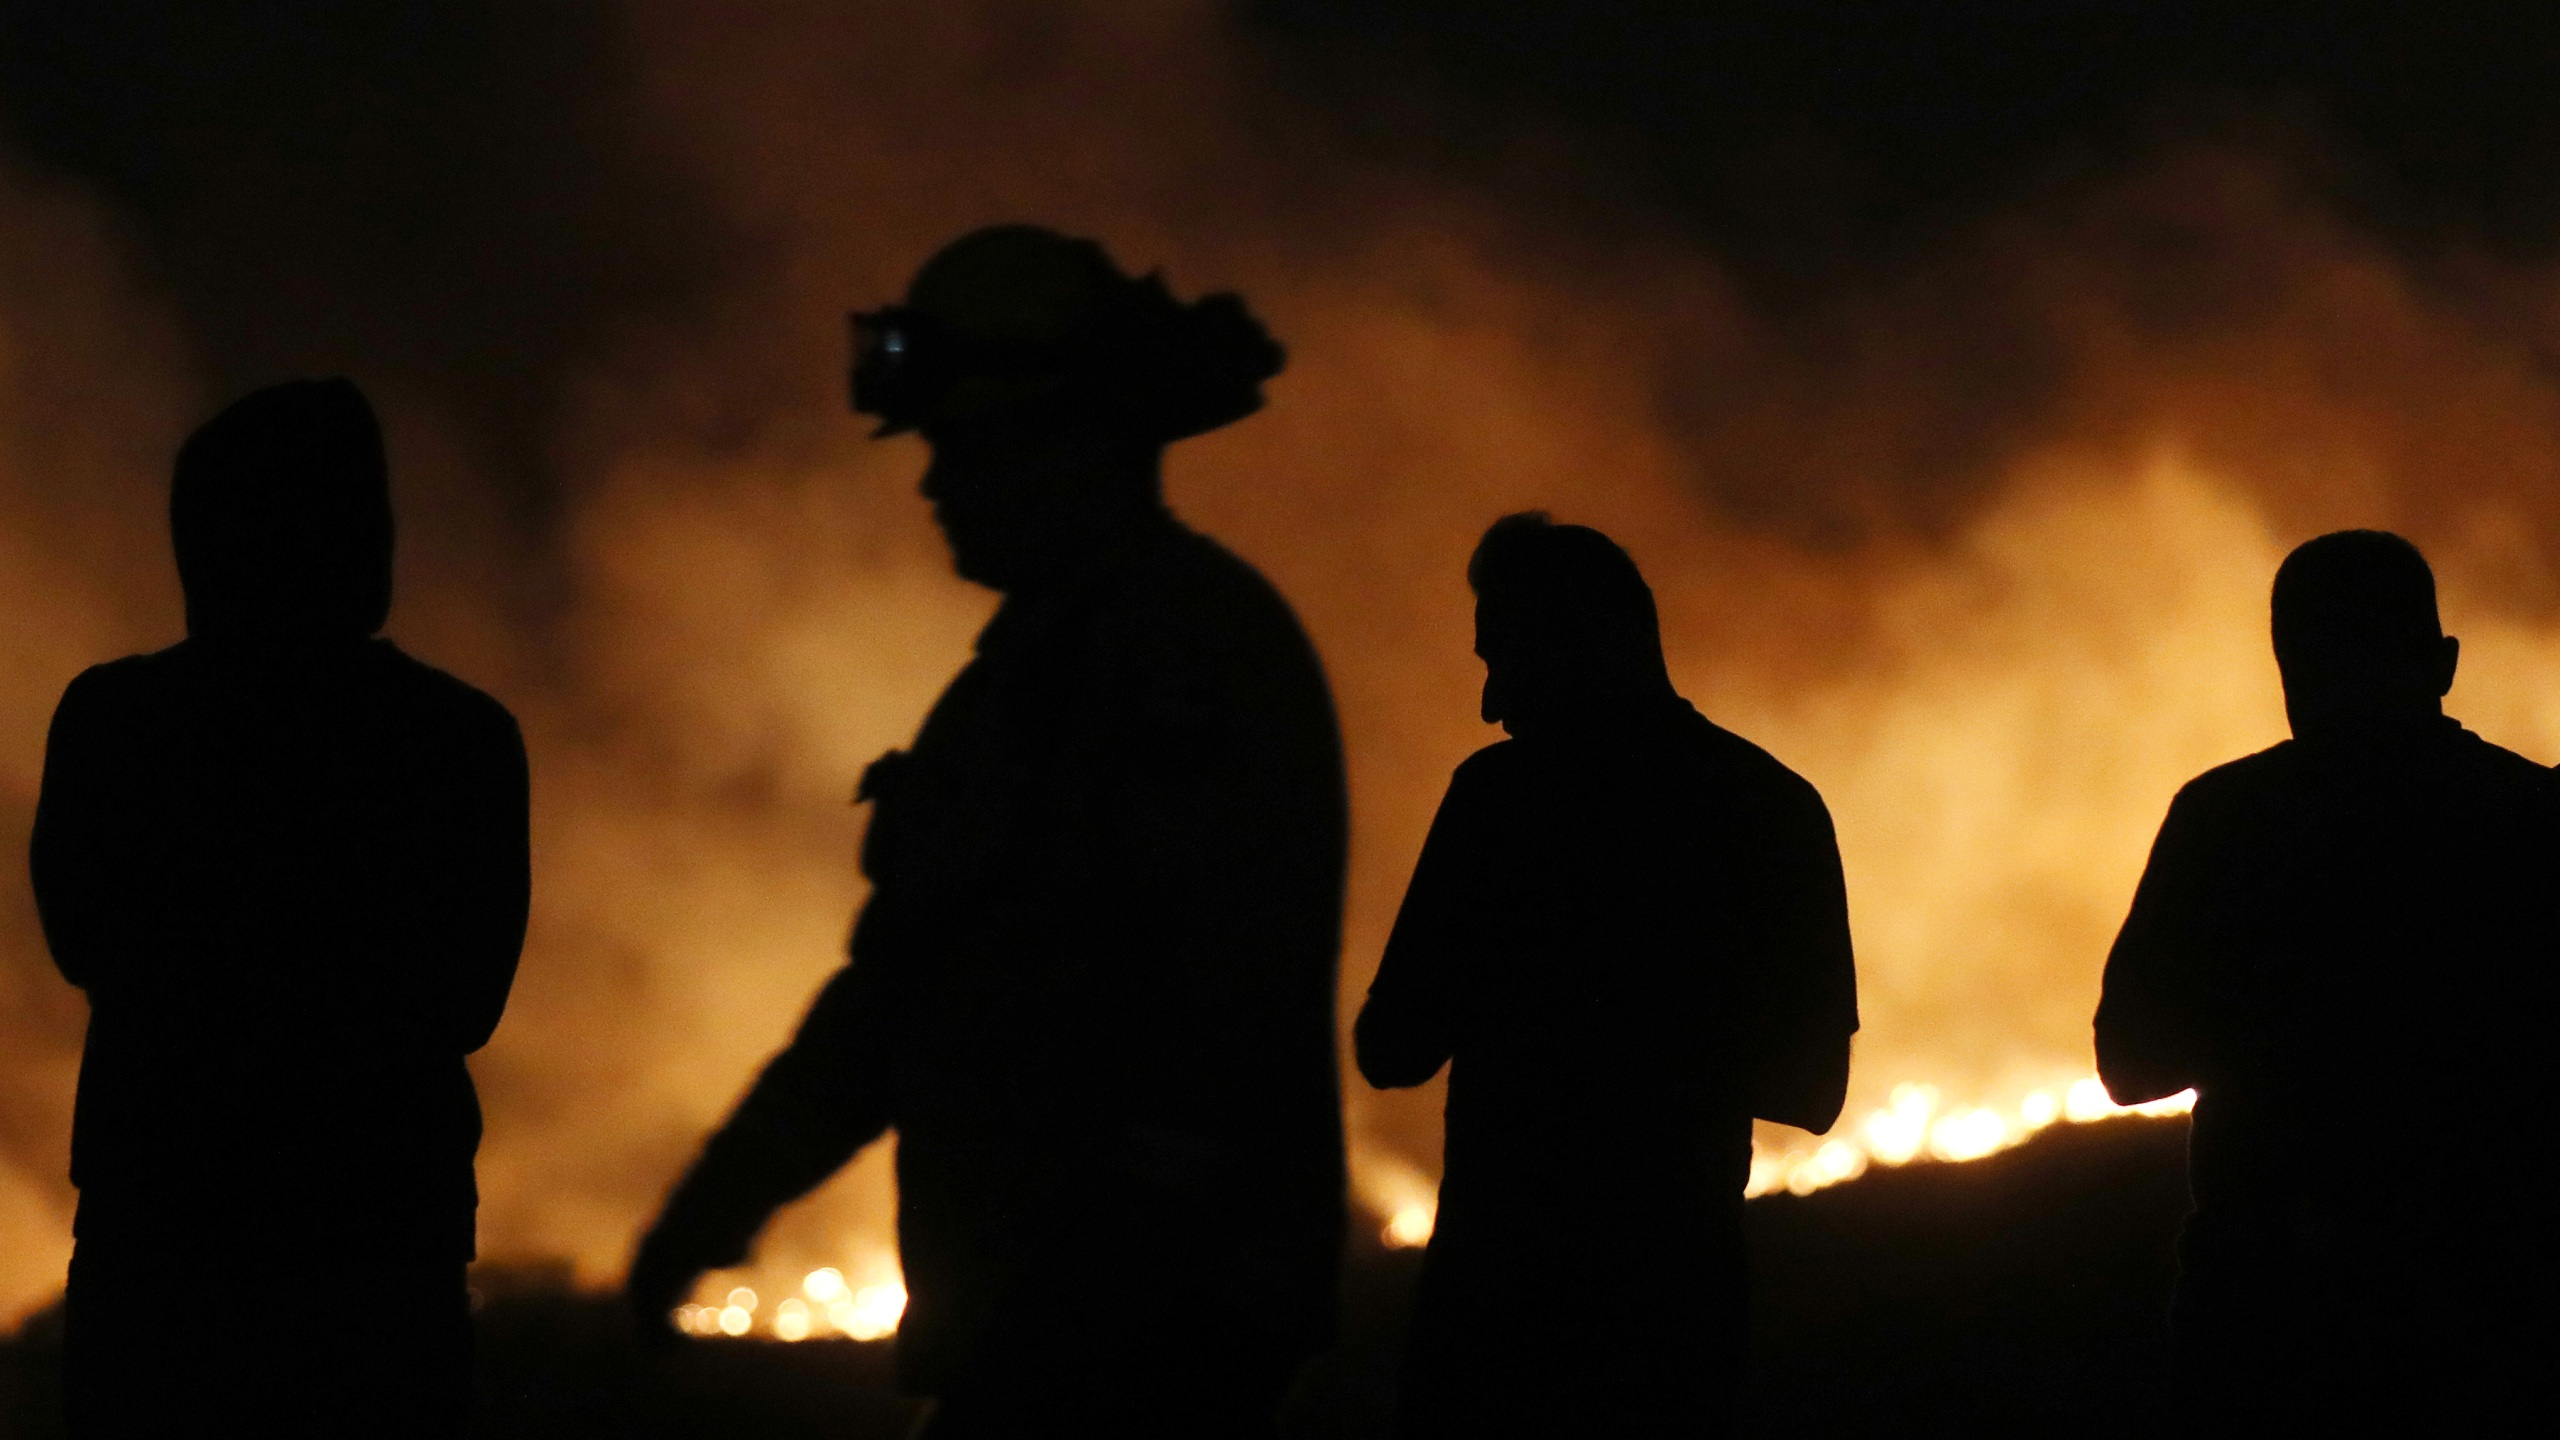 A firefighter walks past onlookers gathered during the Silverado Fire in Orange County on October 26, 2020 in Lake Forest, California. (Photo by Mario Tama/Getty Images)